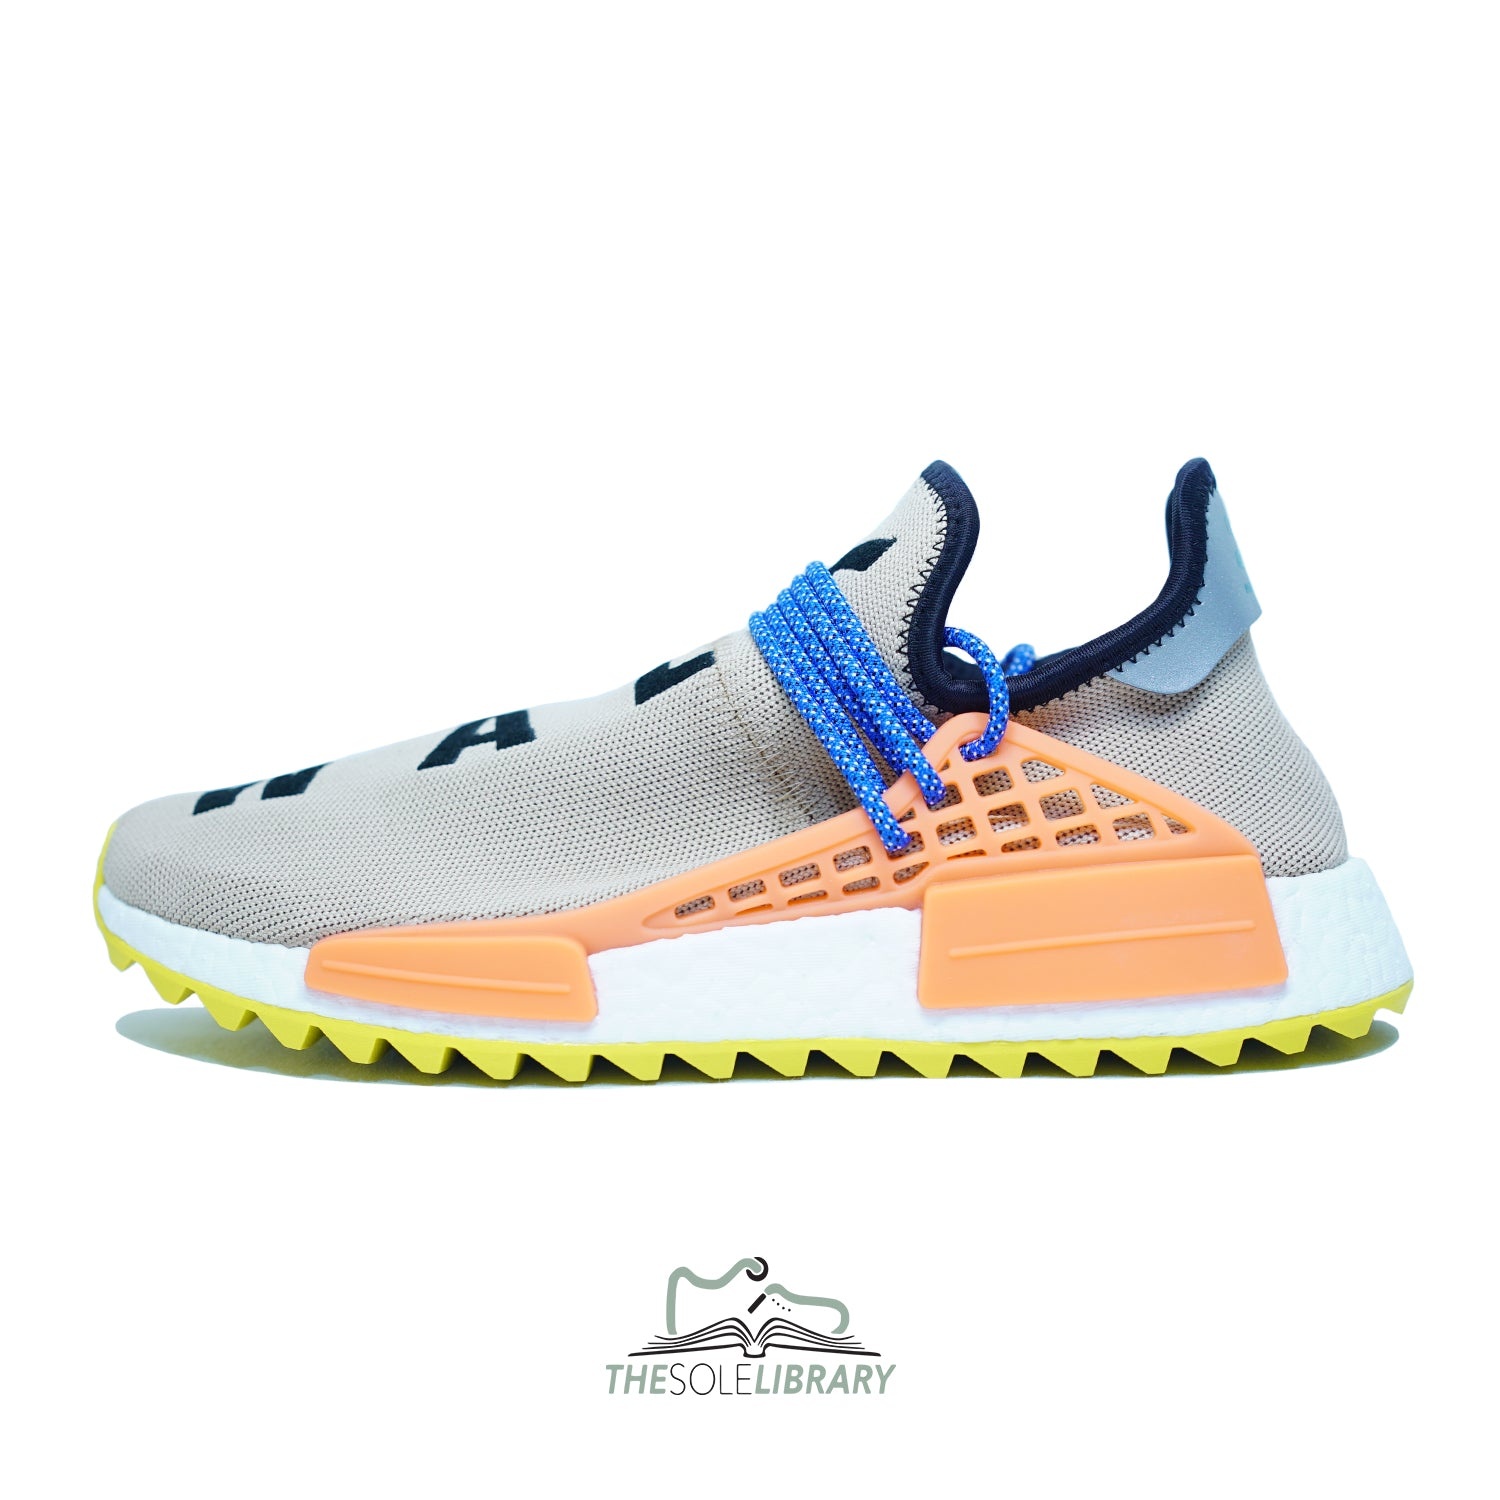 8d4c70571efe Pharrell x Adidas Human Race NMD TR  Pale Nude  - The Sole Library